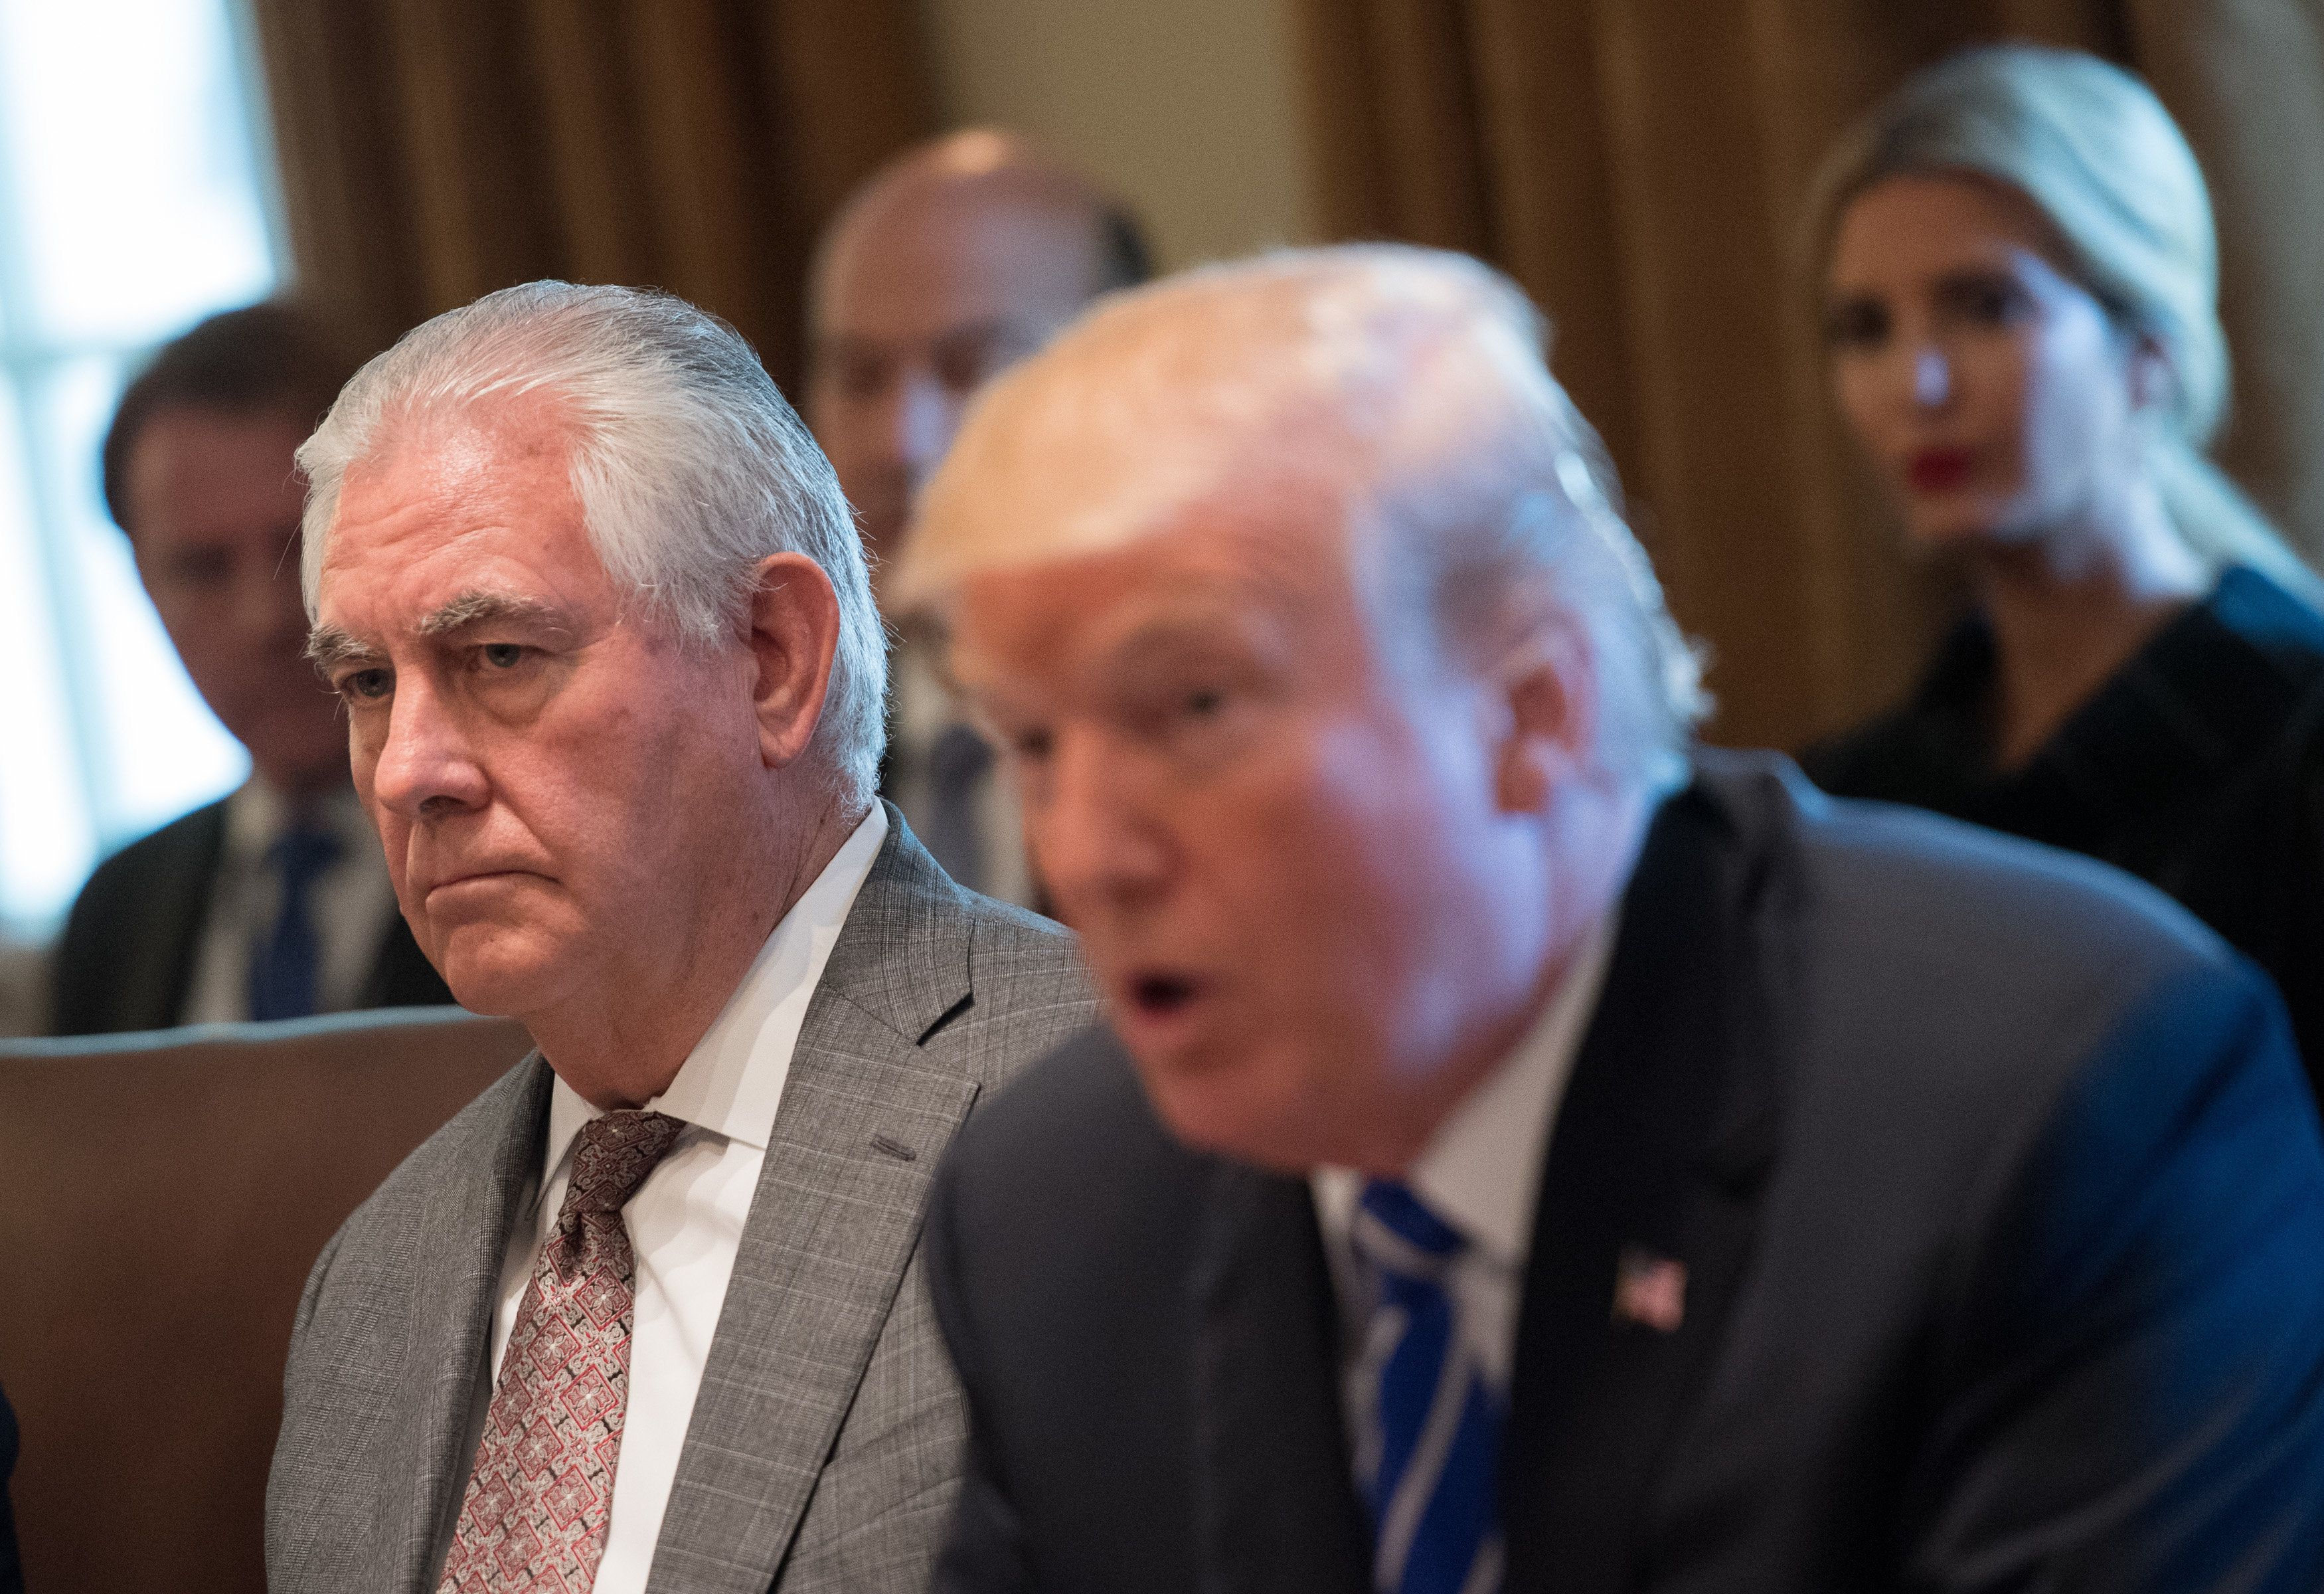 WASHINGTON, DC - NOVEMBER 20: (AFP OUT) Secretary of State Rex Tillerson listens as President Donald Trump speaks to the media during a cabinet meeting at the White House on November 20, 2017 in Washington, D.C. President Trump officially designated North Korea as a state sponsor of terrorism. Photo by Kevin Dietsch/UPI